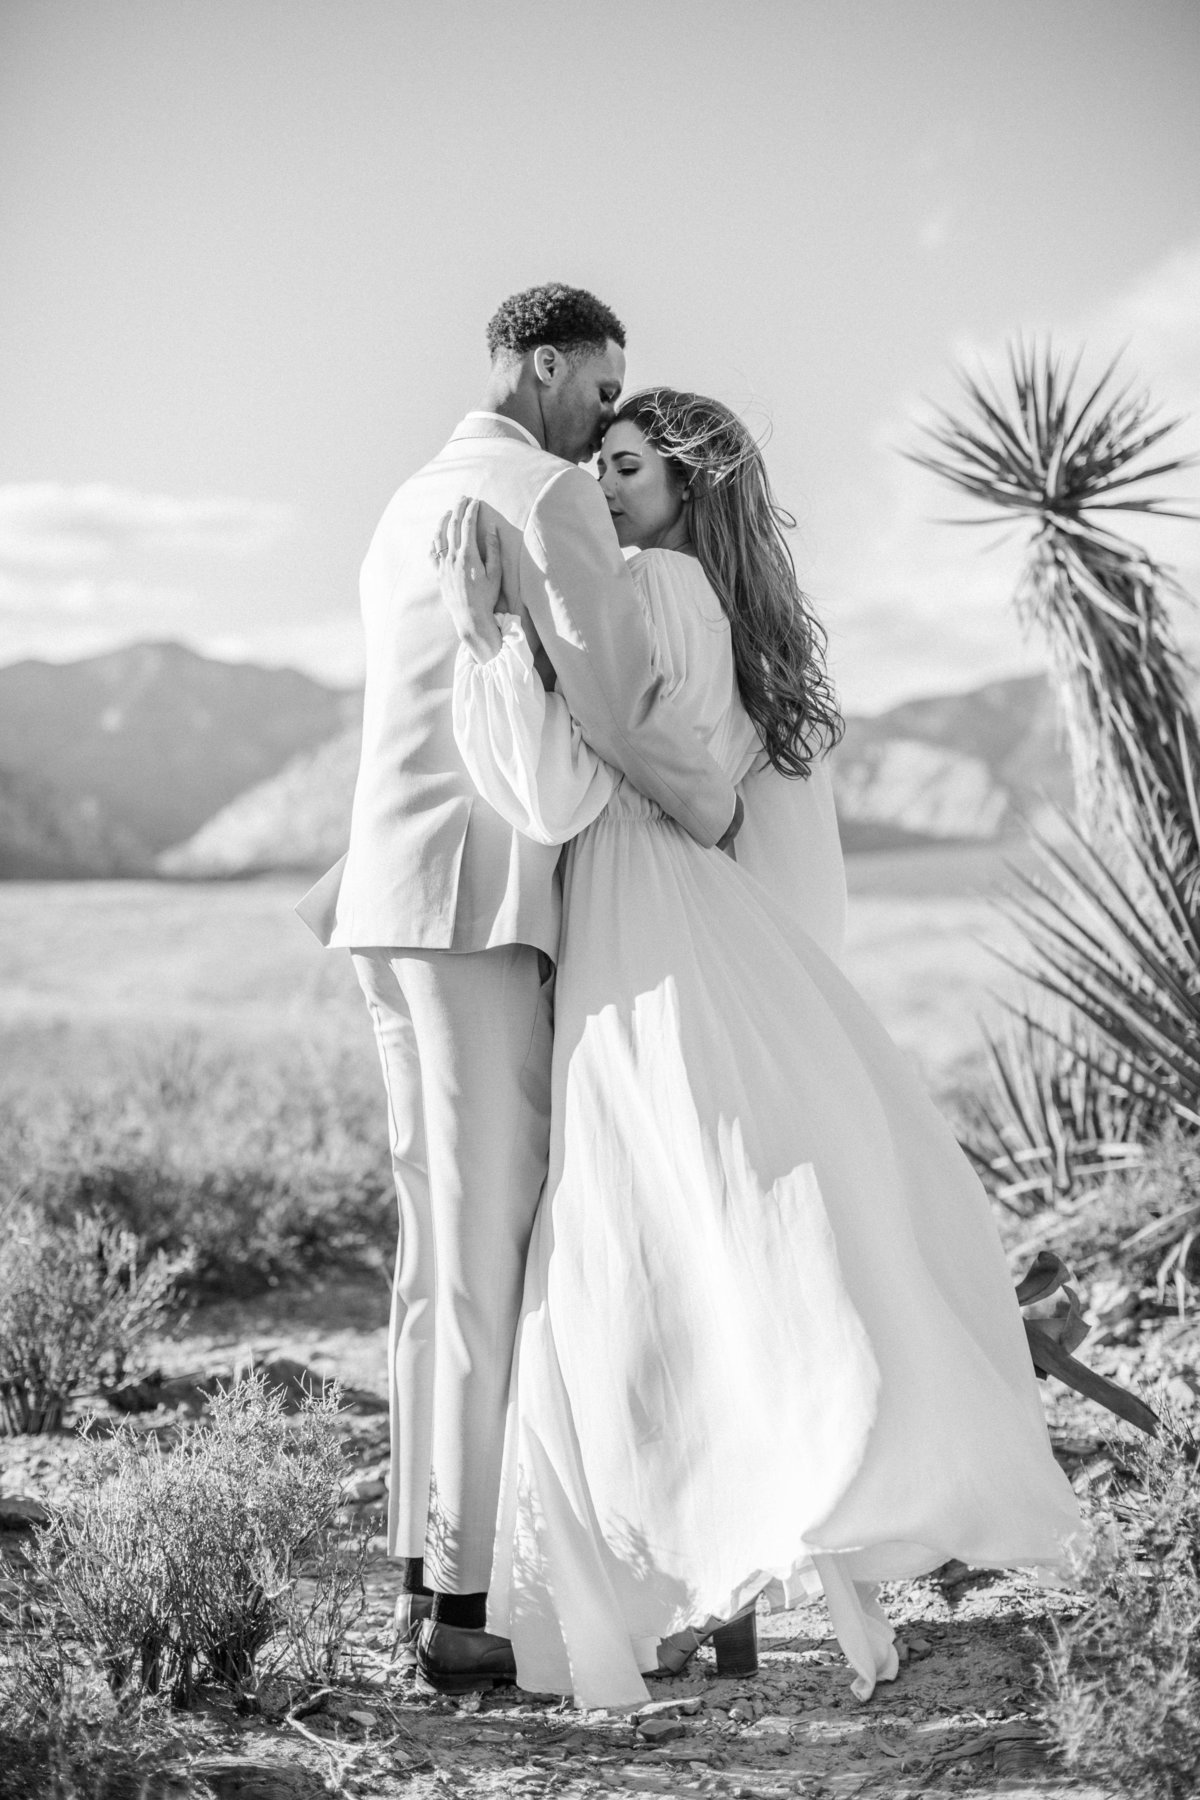 Babsie-Ly-Photography-Red-Rock-Canyon-Las-Vegas-Wedding-Elopement-Fine-Art-Film-domenica-domenica-robe-020